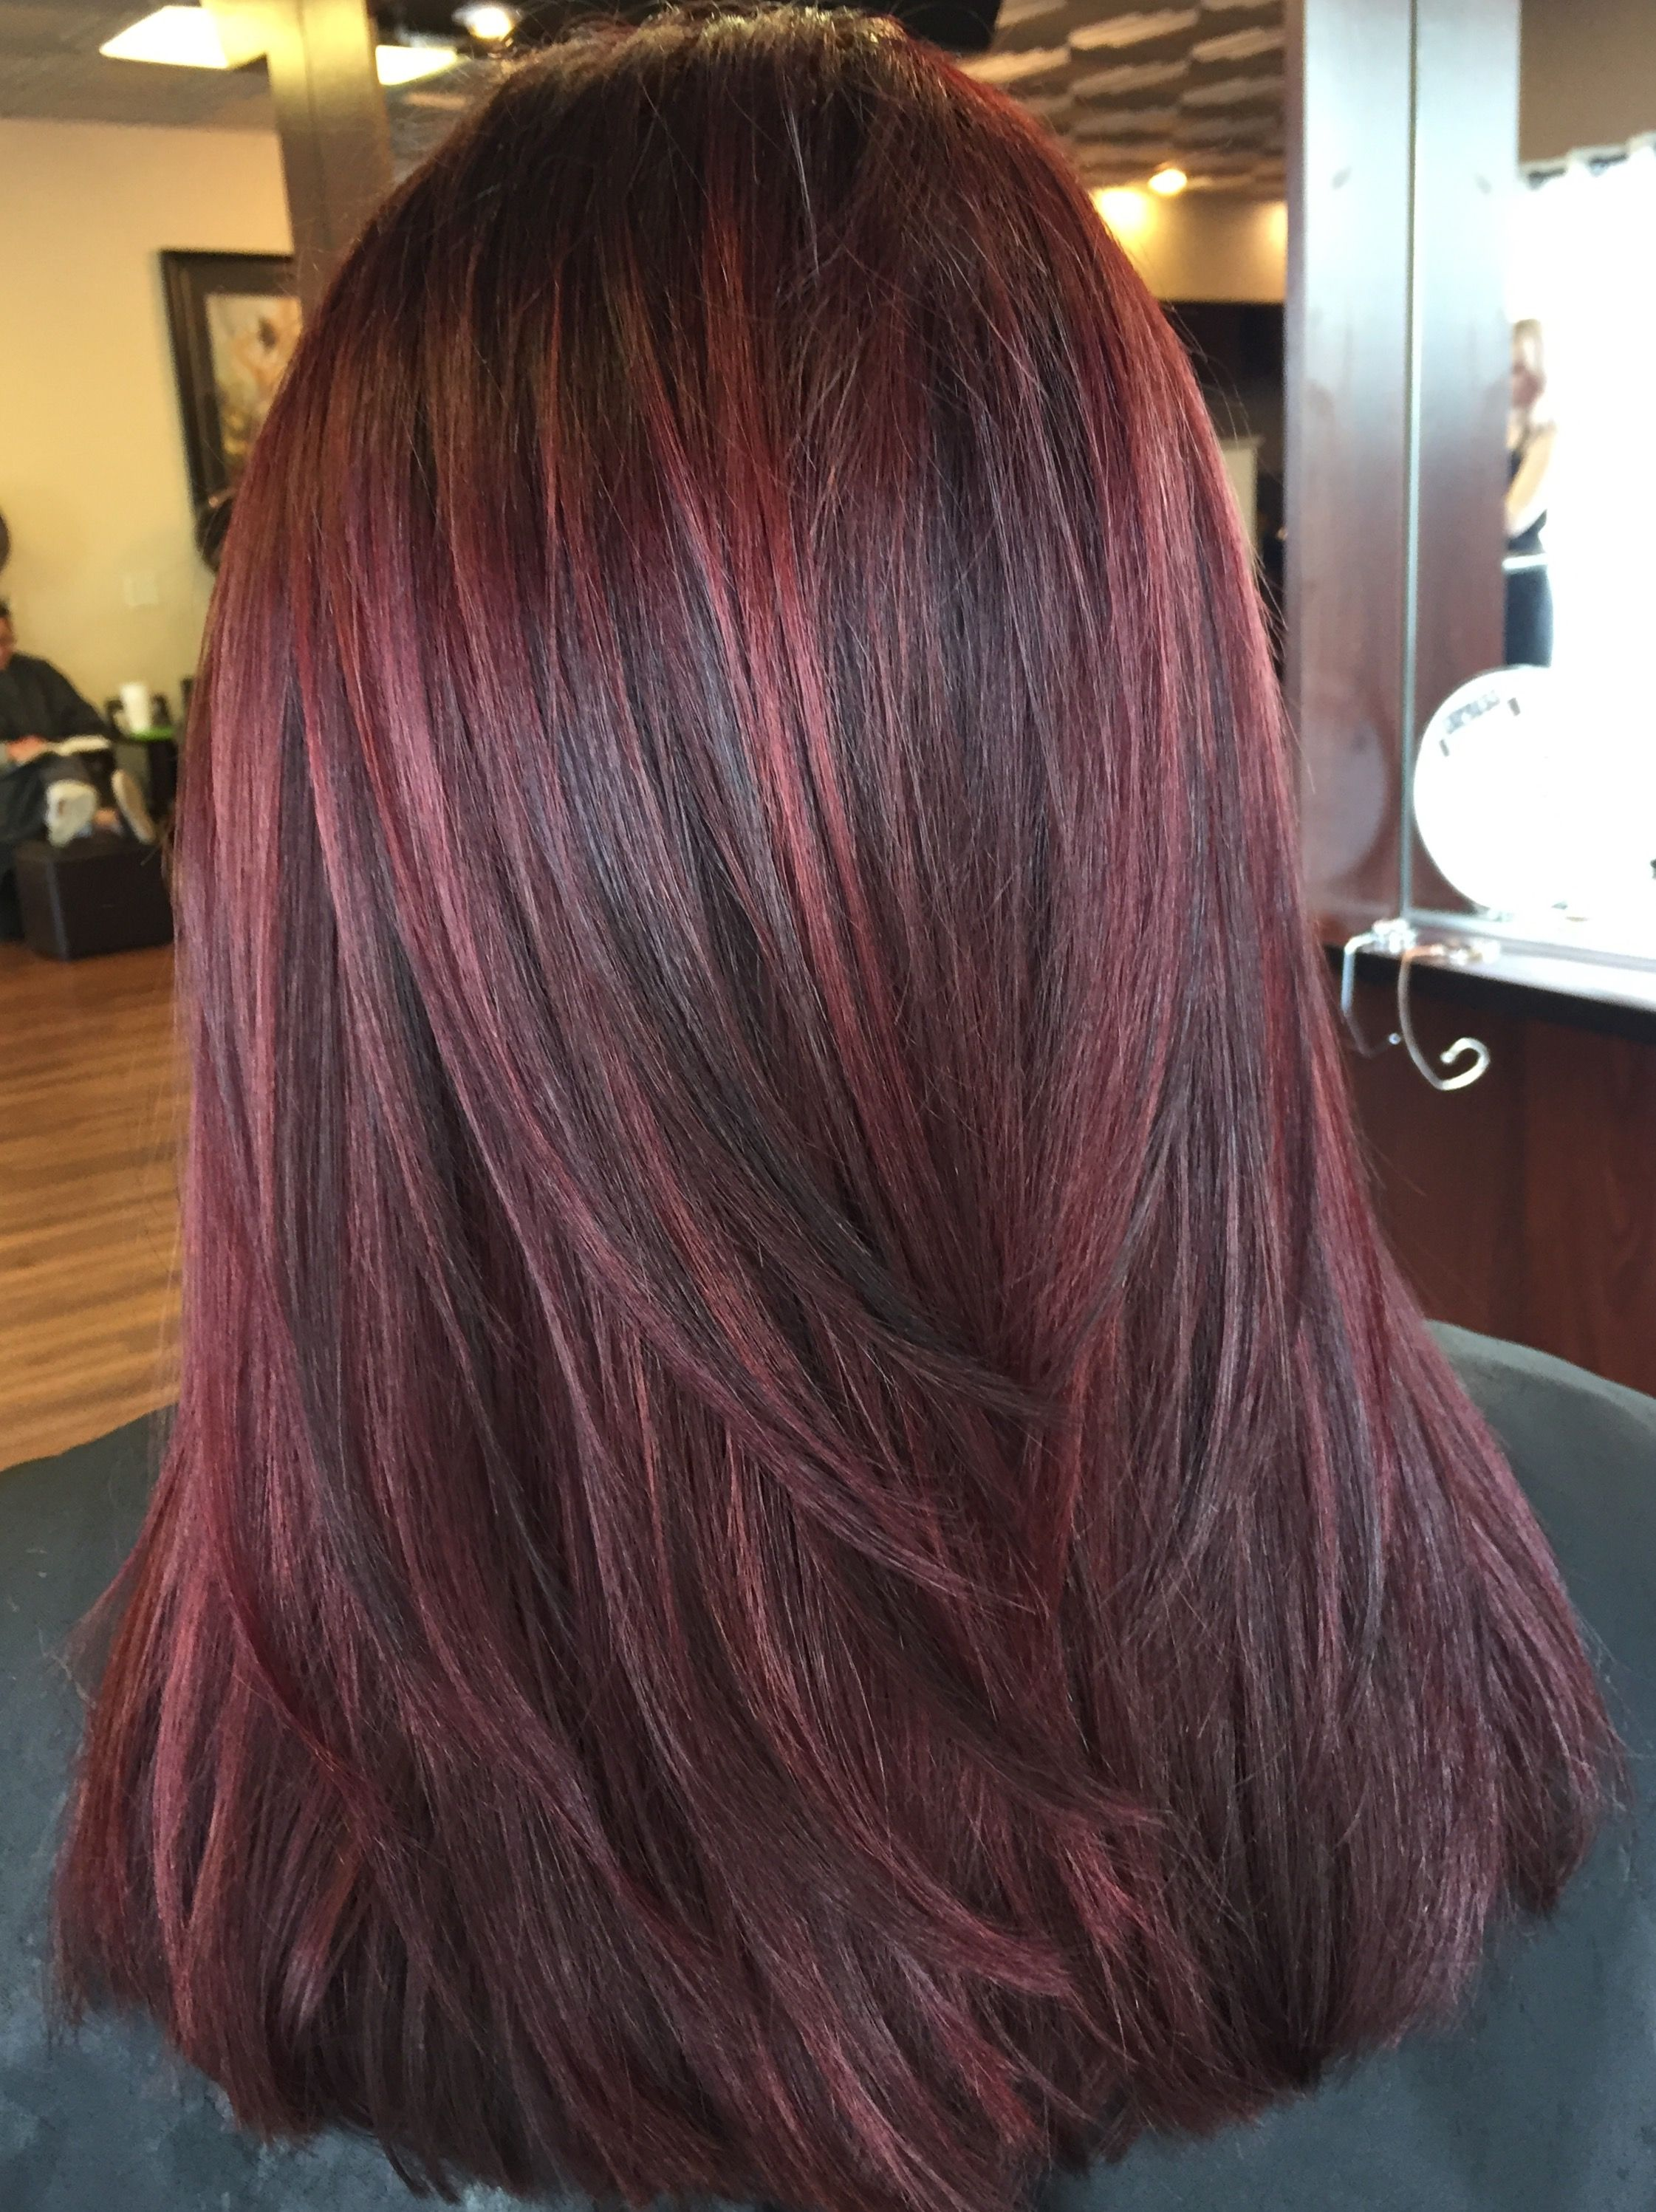 Reds Lowlights Dimensional Red Plum Hair Red Hair Color